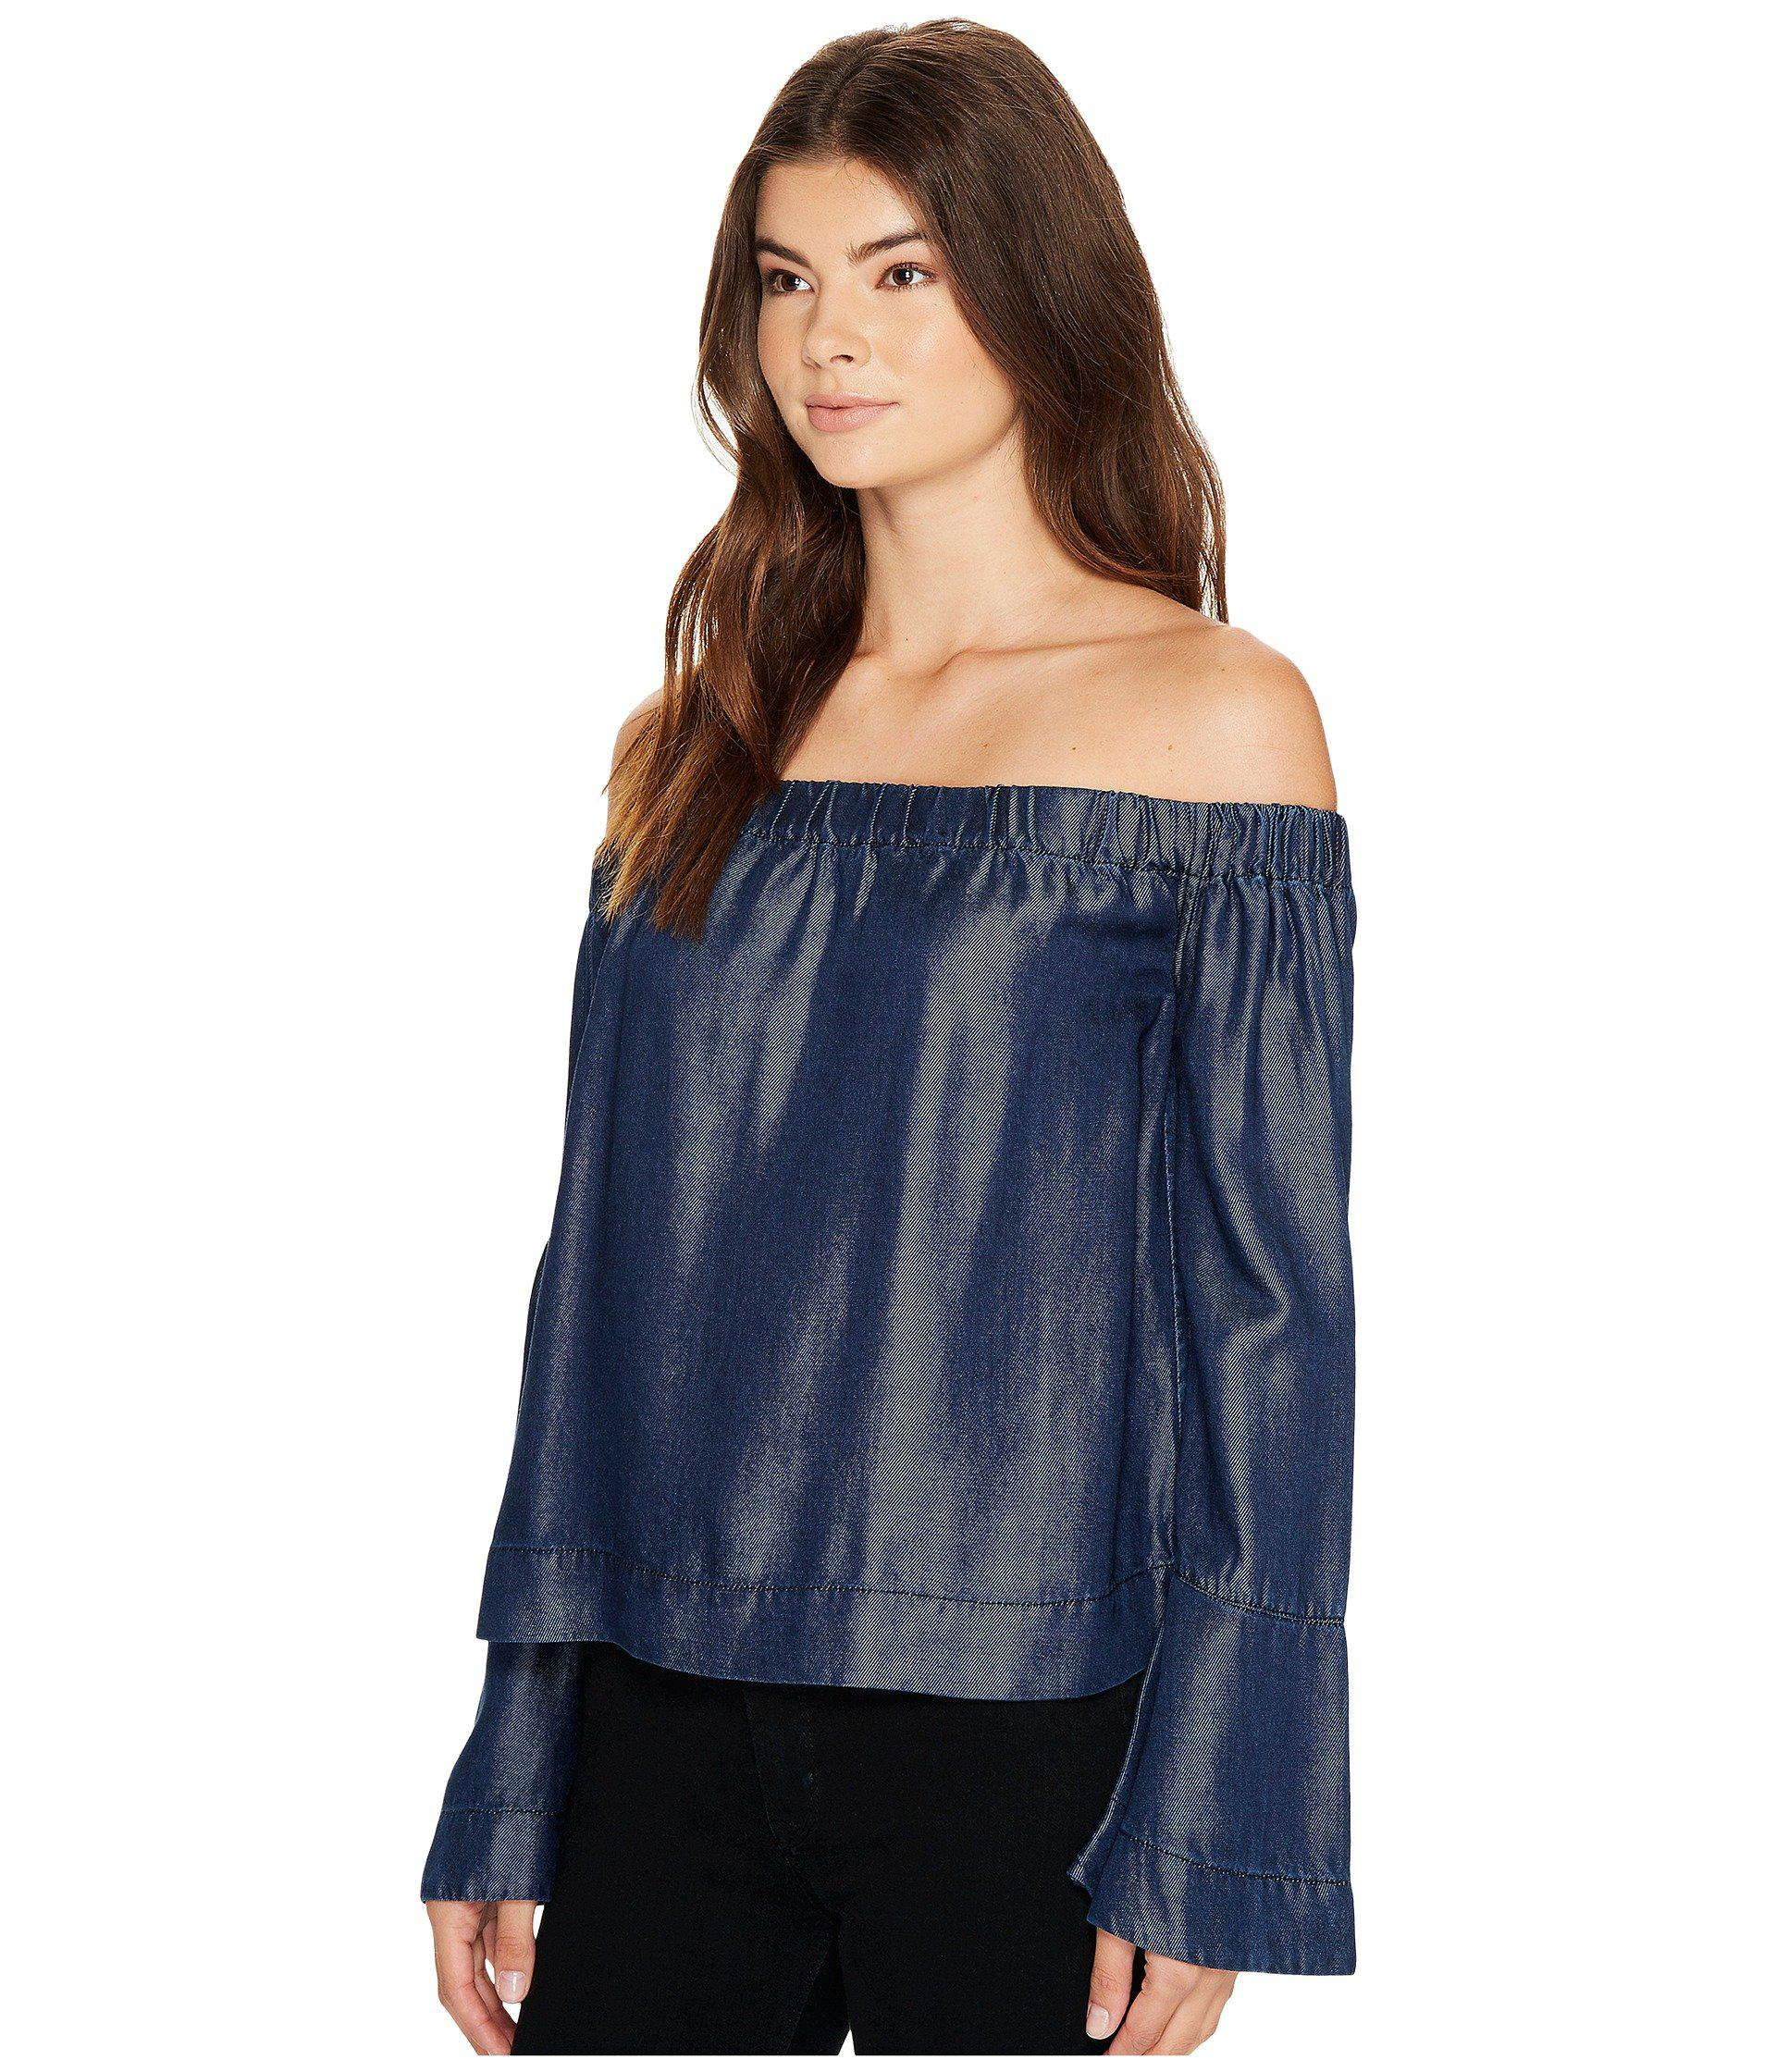 38352dd6167e9c Lyst - 7 For All Mankind Bell Sleeve Off Shoulder Denim Top In Rinsed Night  in Blue - Save 34%